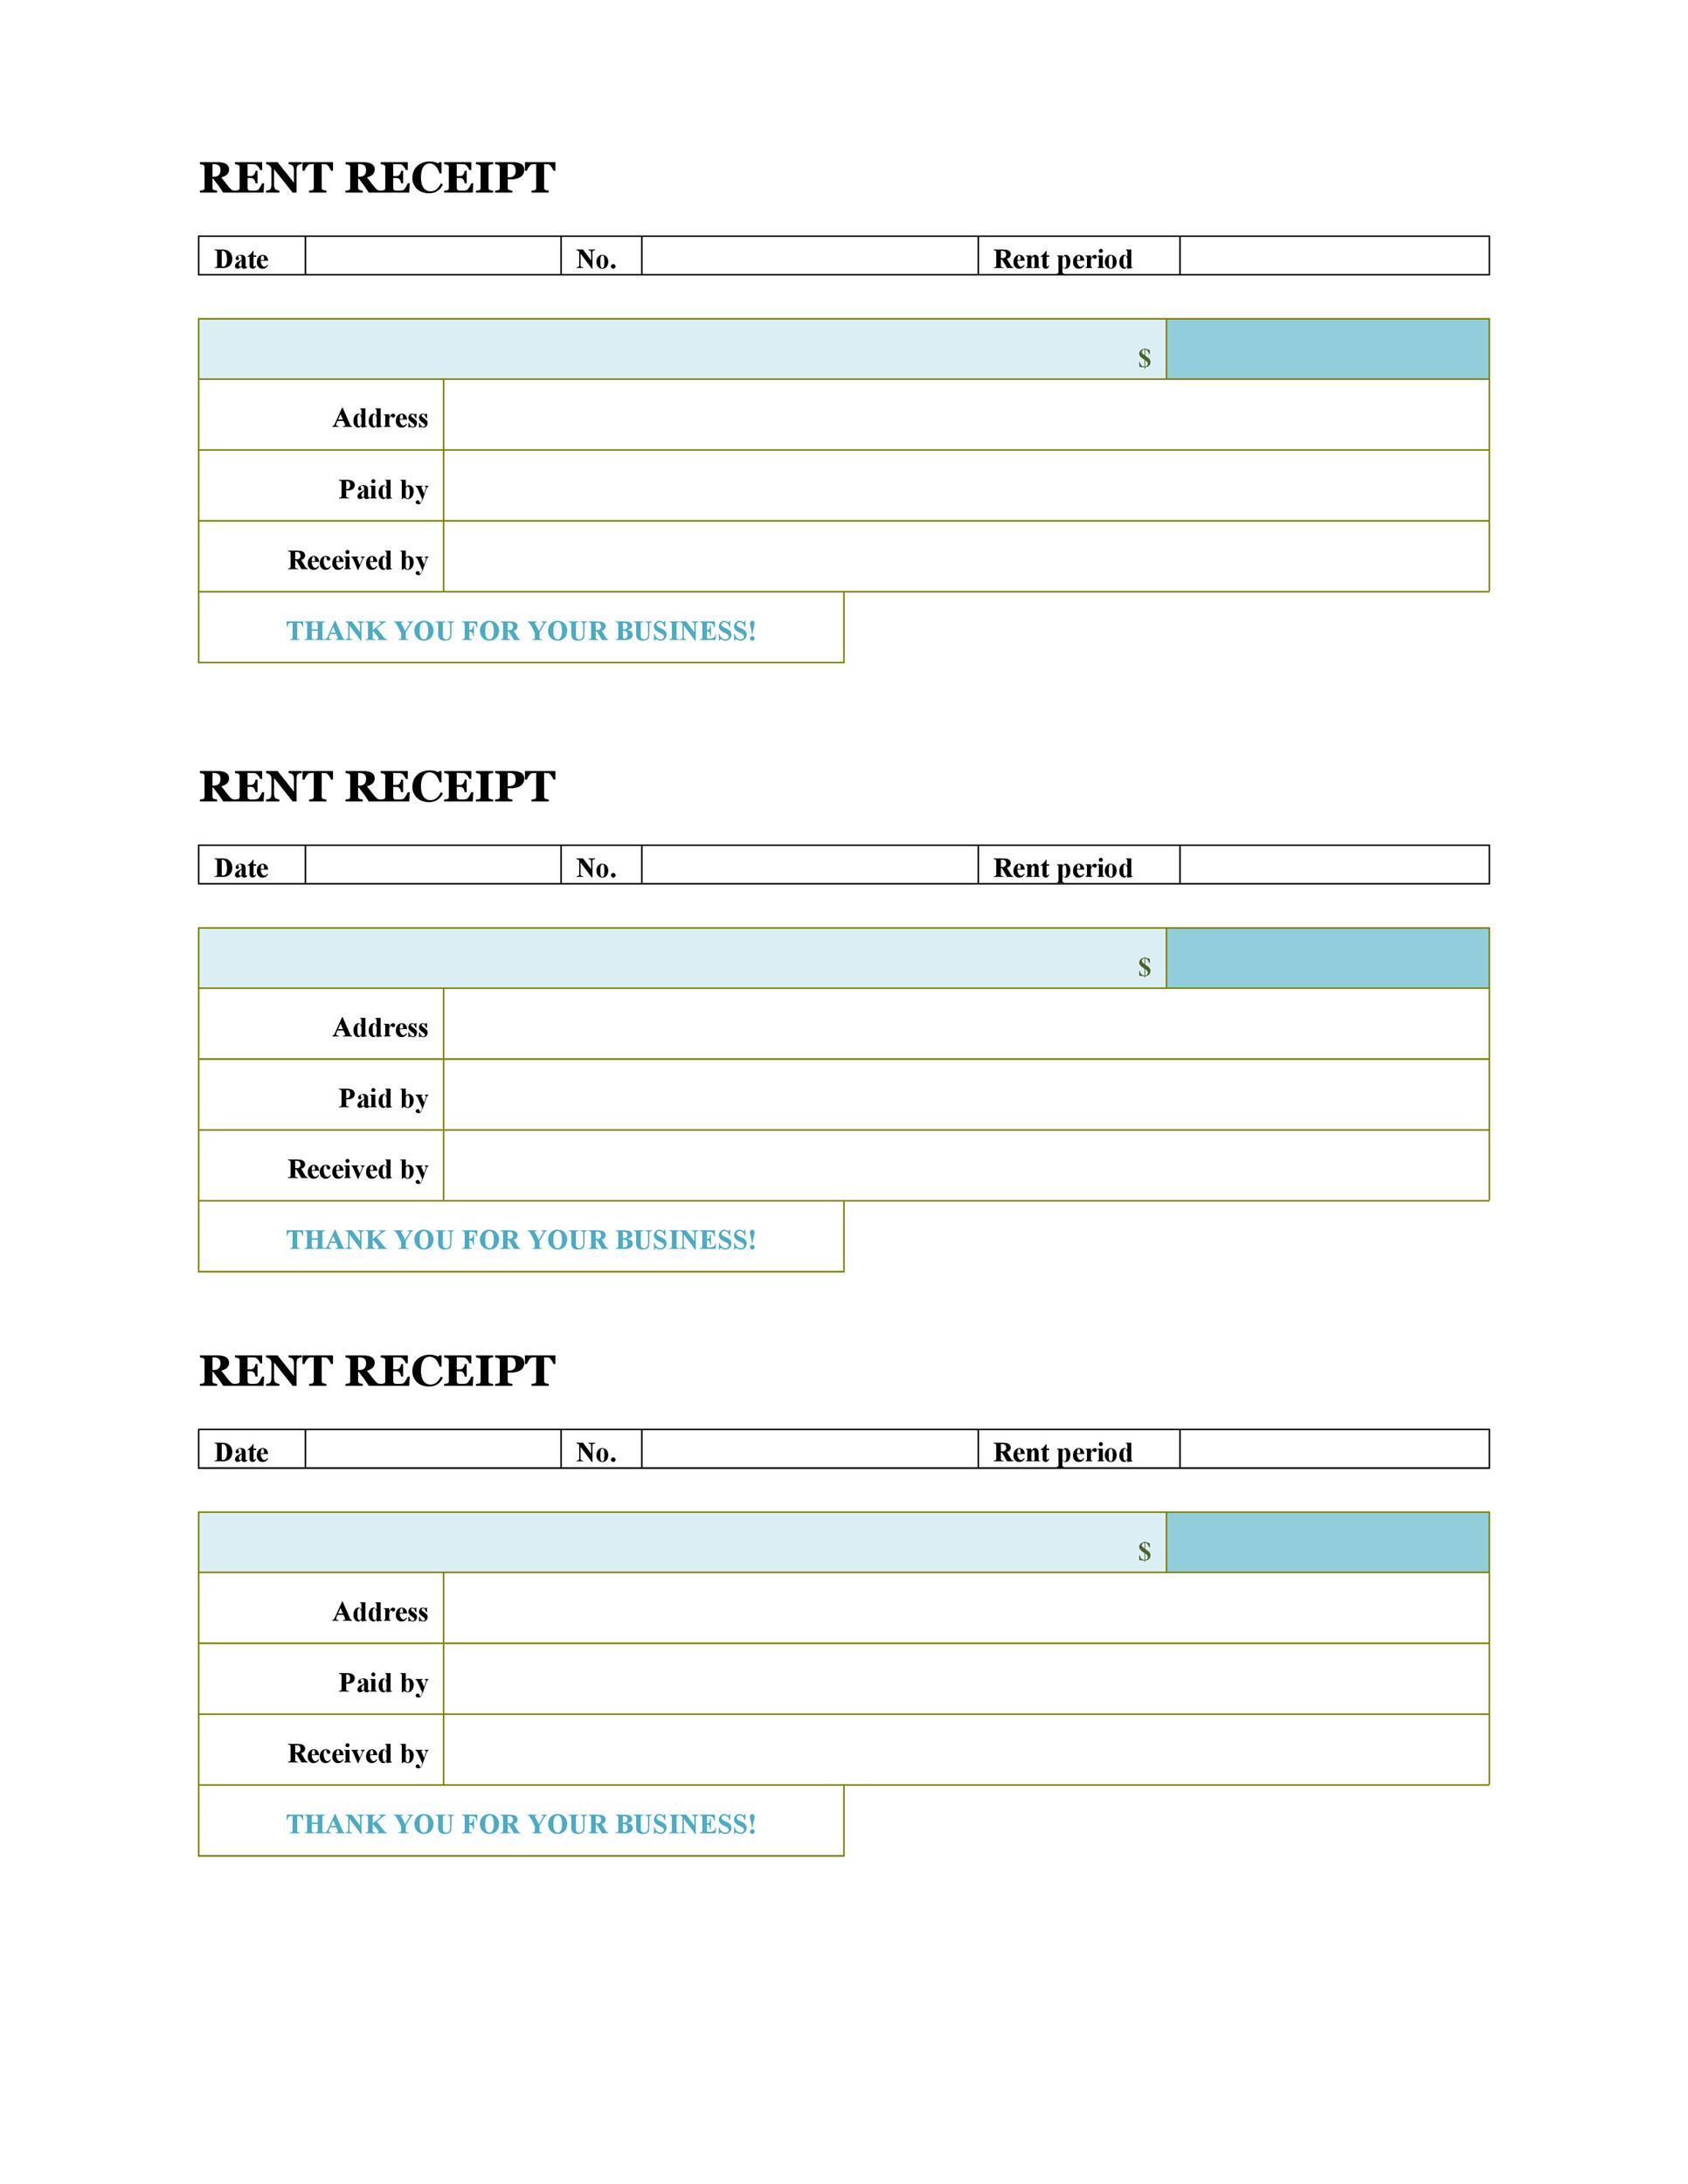 50 Free Receipt Templates Cash Sales Donation Taxi – Rent Receipt Word